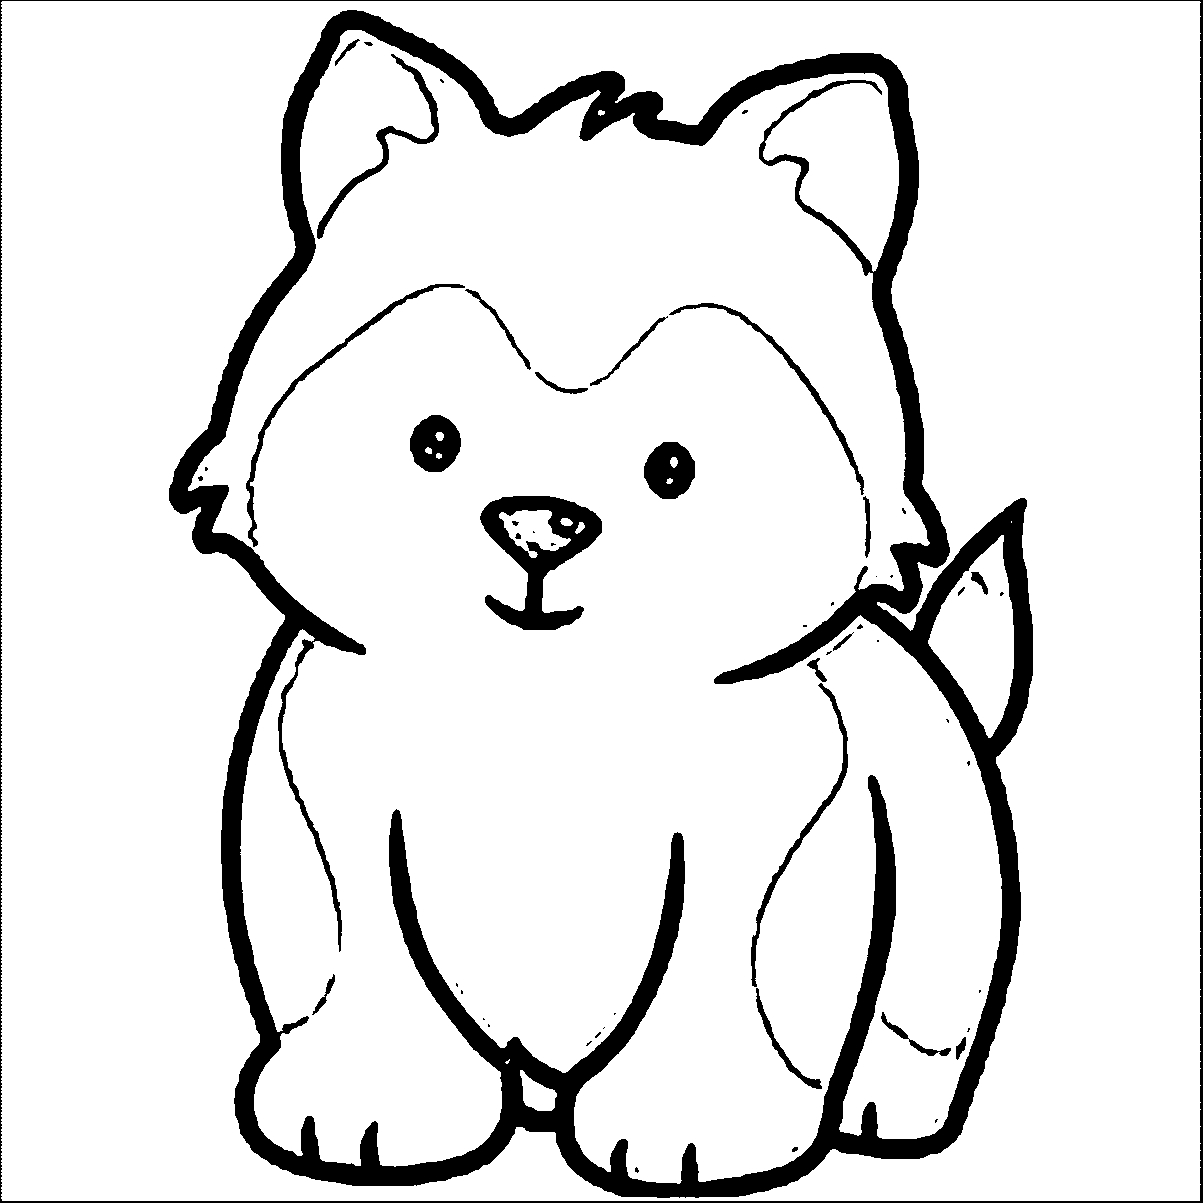 23 Husky Coloring Pages Selection | FREE COLORING PAGES